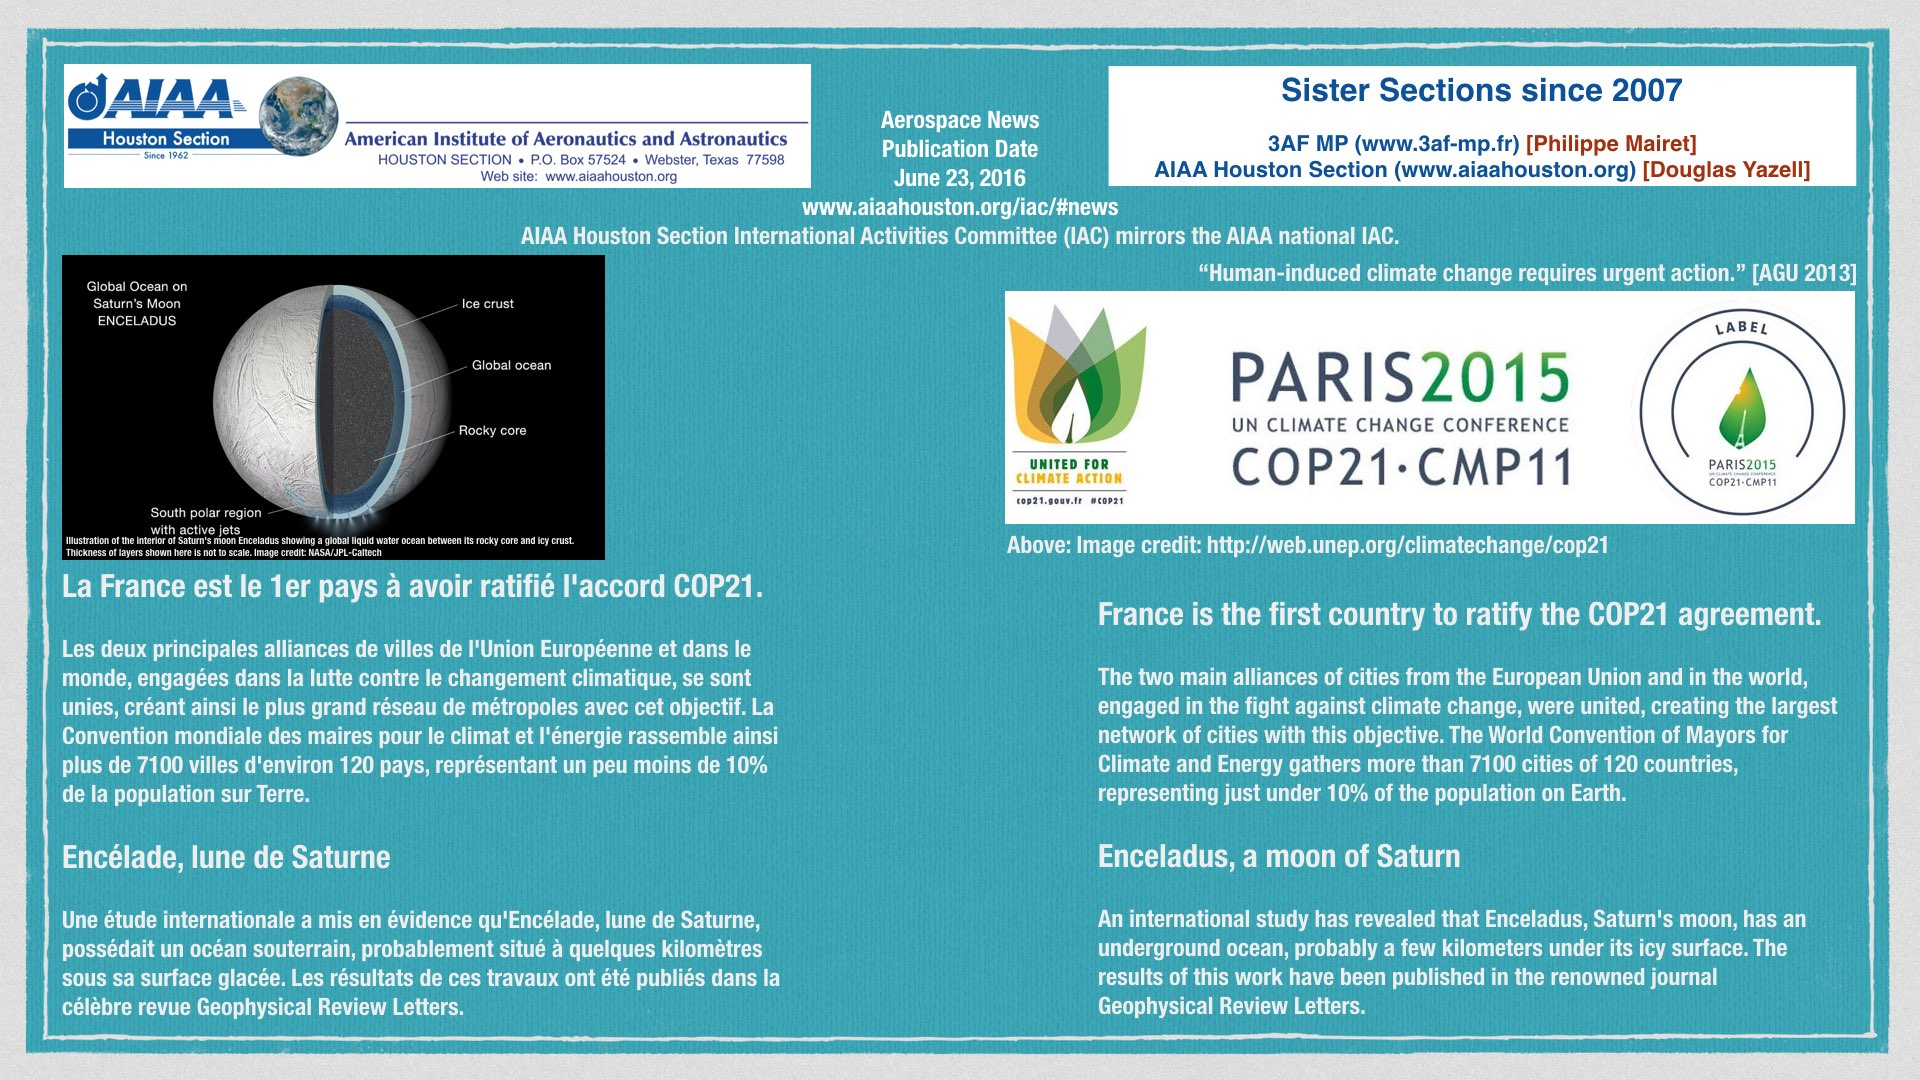 Above: News of Enceladus, a moon of Saturn, and news of the first country to ratify COP 21. (Click to zoom.)